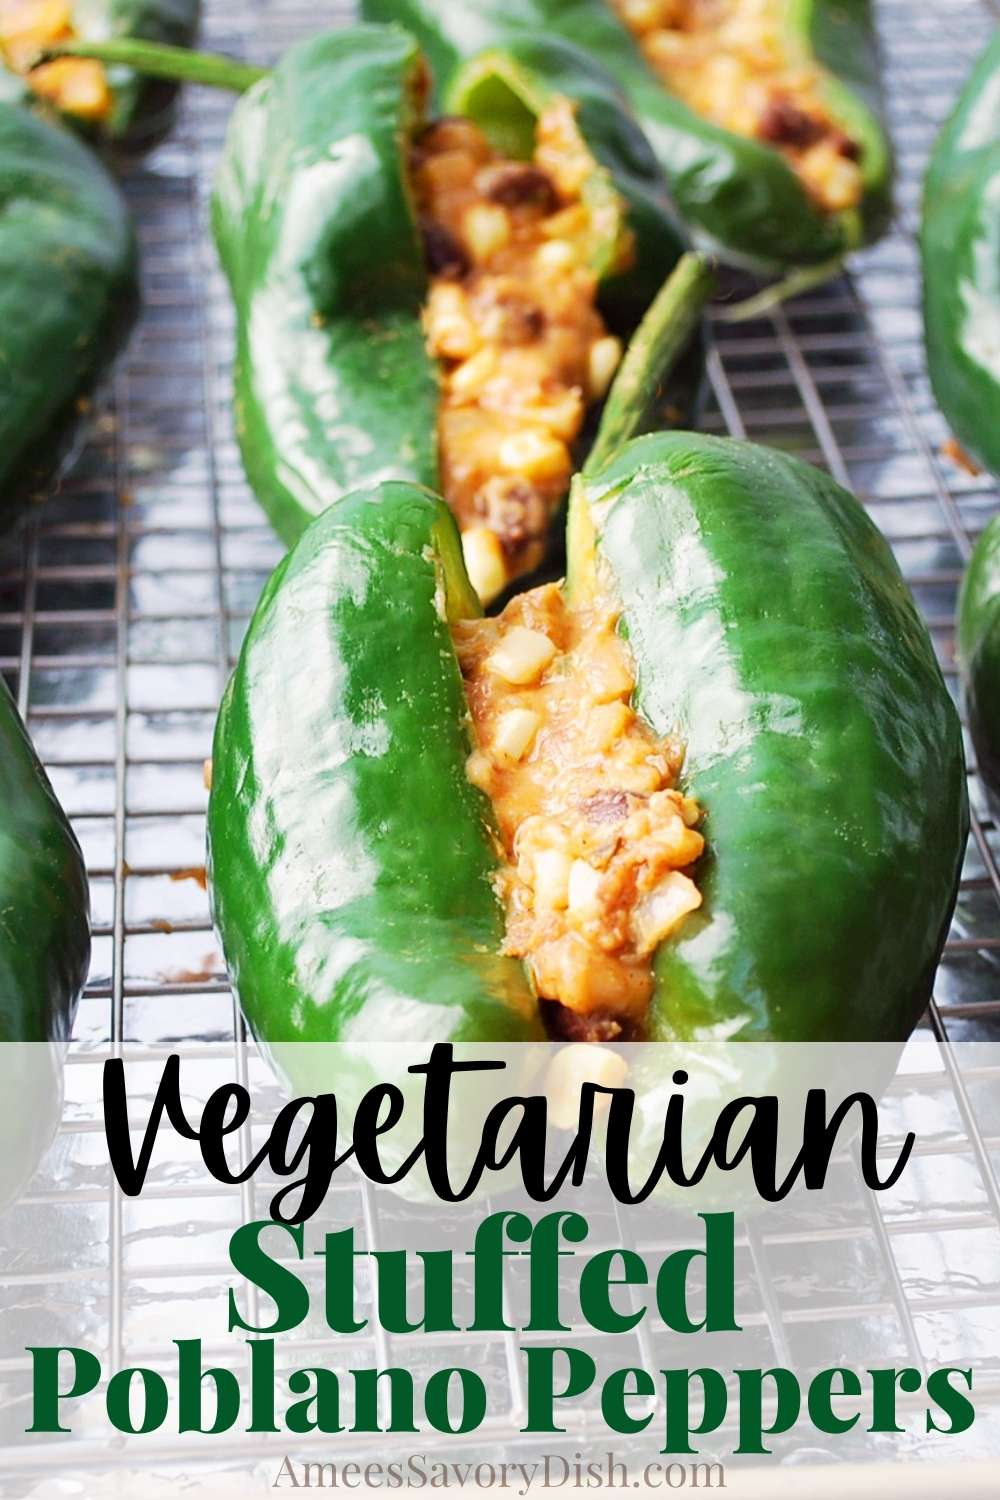 This easy recipe for Vegetarian Stuffed Poblano Peppers is filled with beans, corn, cheddar and packs lots of Mexican flavors. This delicious gluten-free high fiber meal is perfect to make for a weeknight or for a vegetarian Cinco De Mayo celebration! via @Ameessavorydish